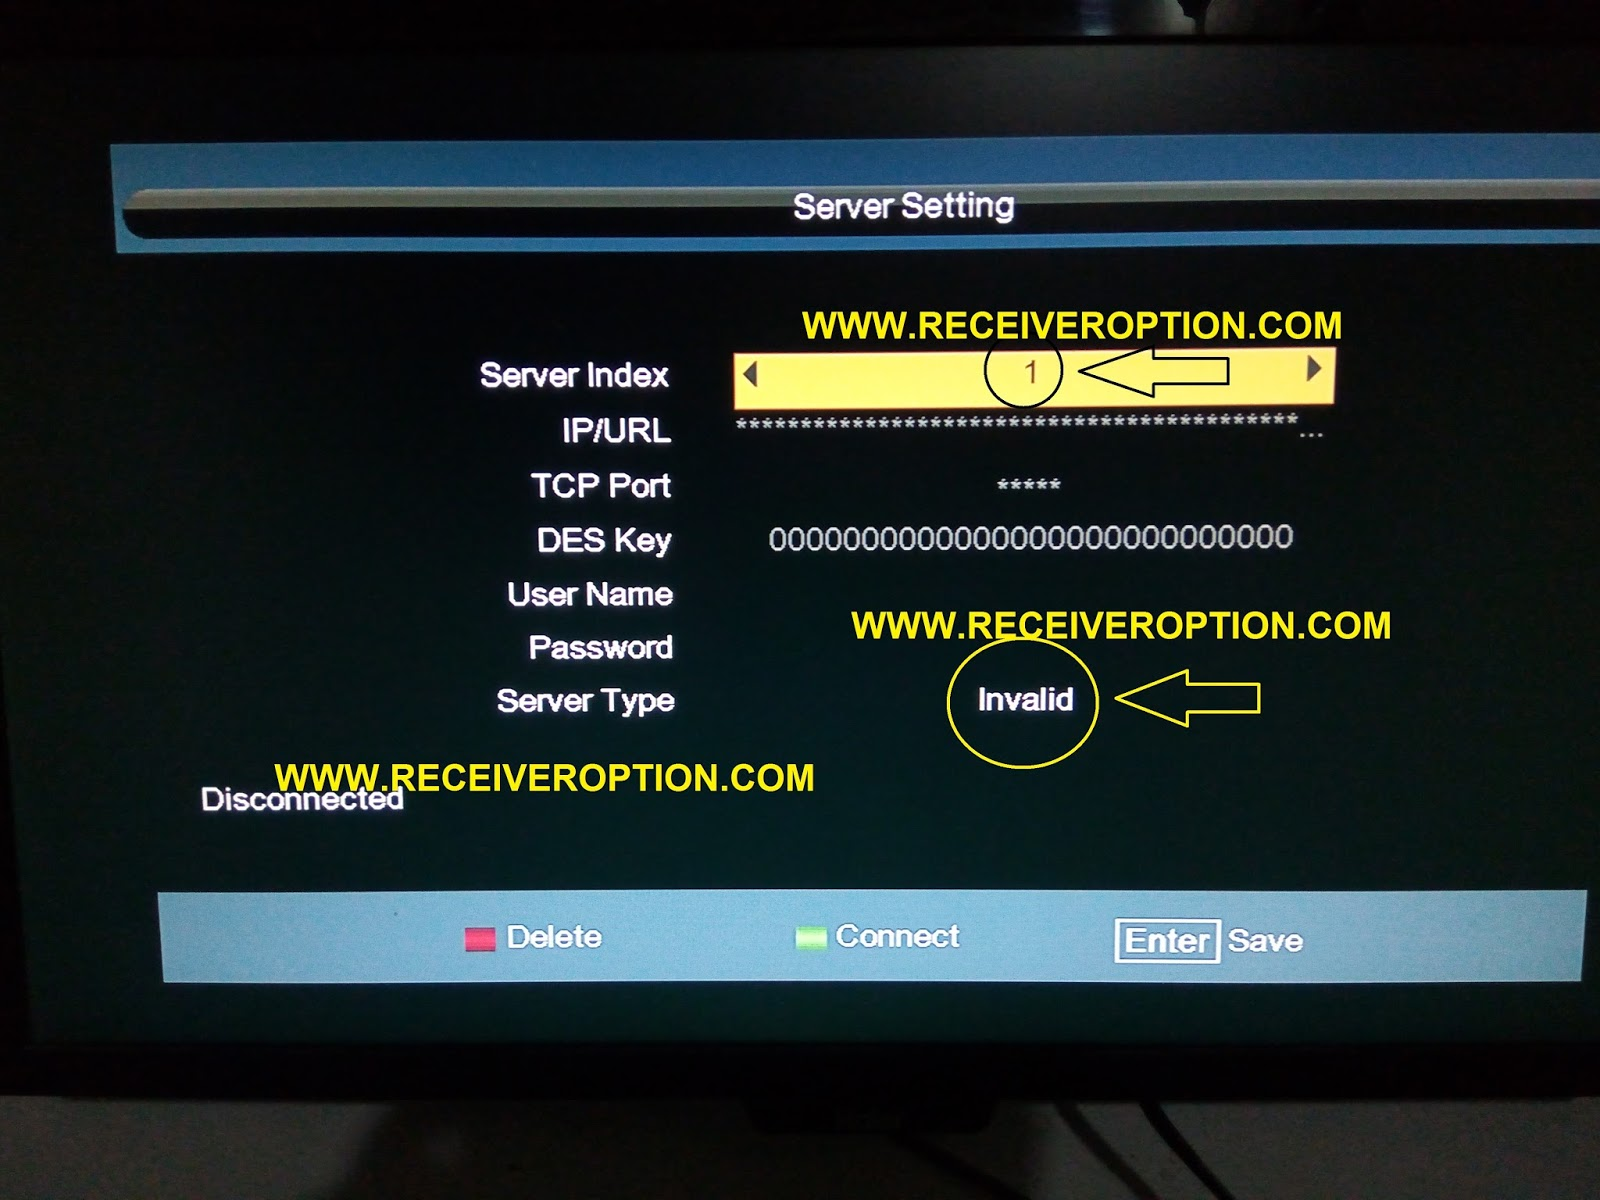 OK SONY SUPER HD RECEIVER CCCAM OPTION - HOW TO ENTER BISS